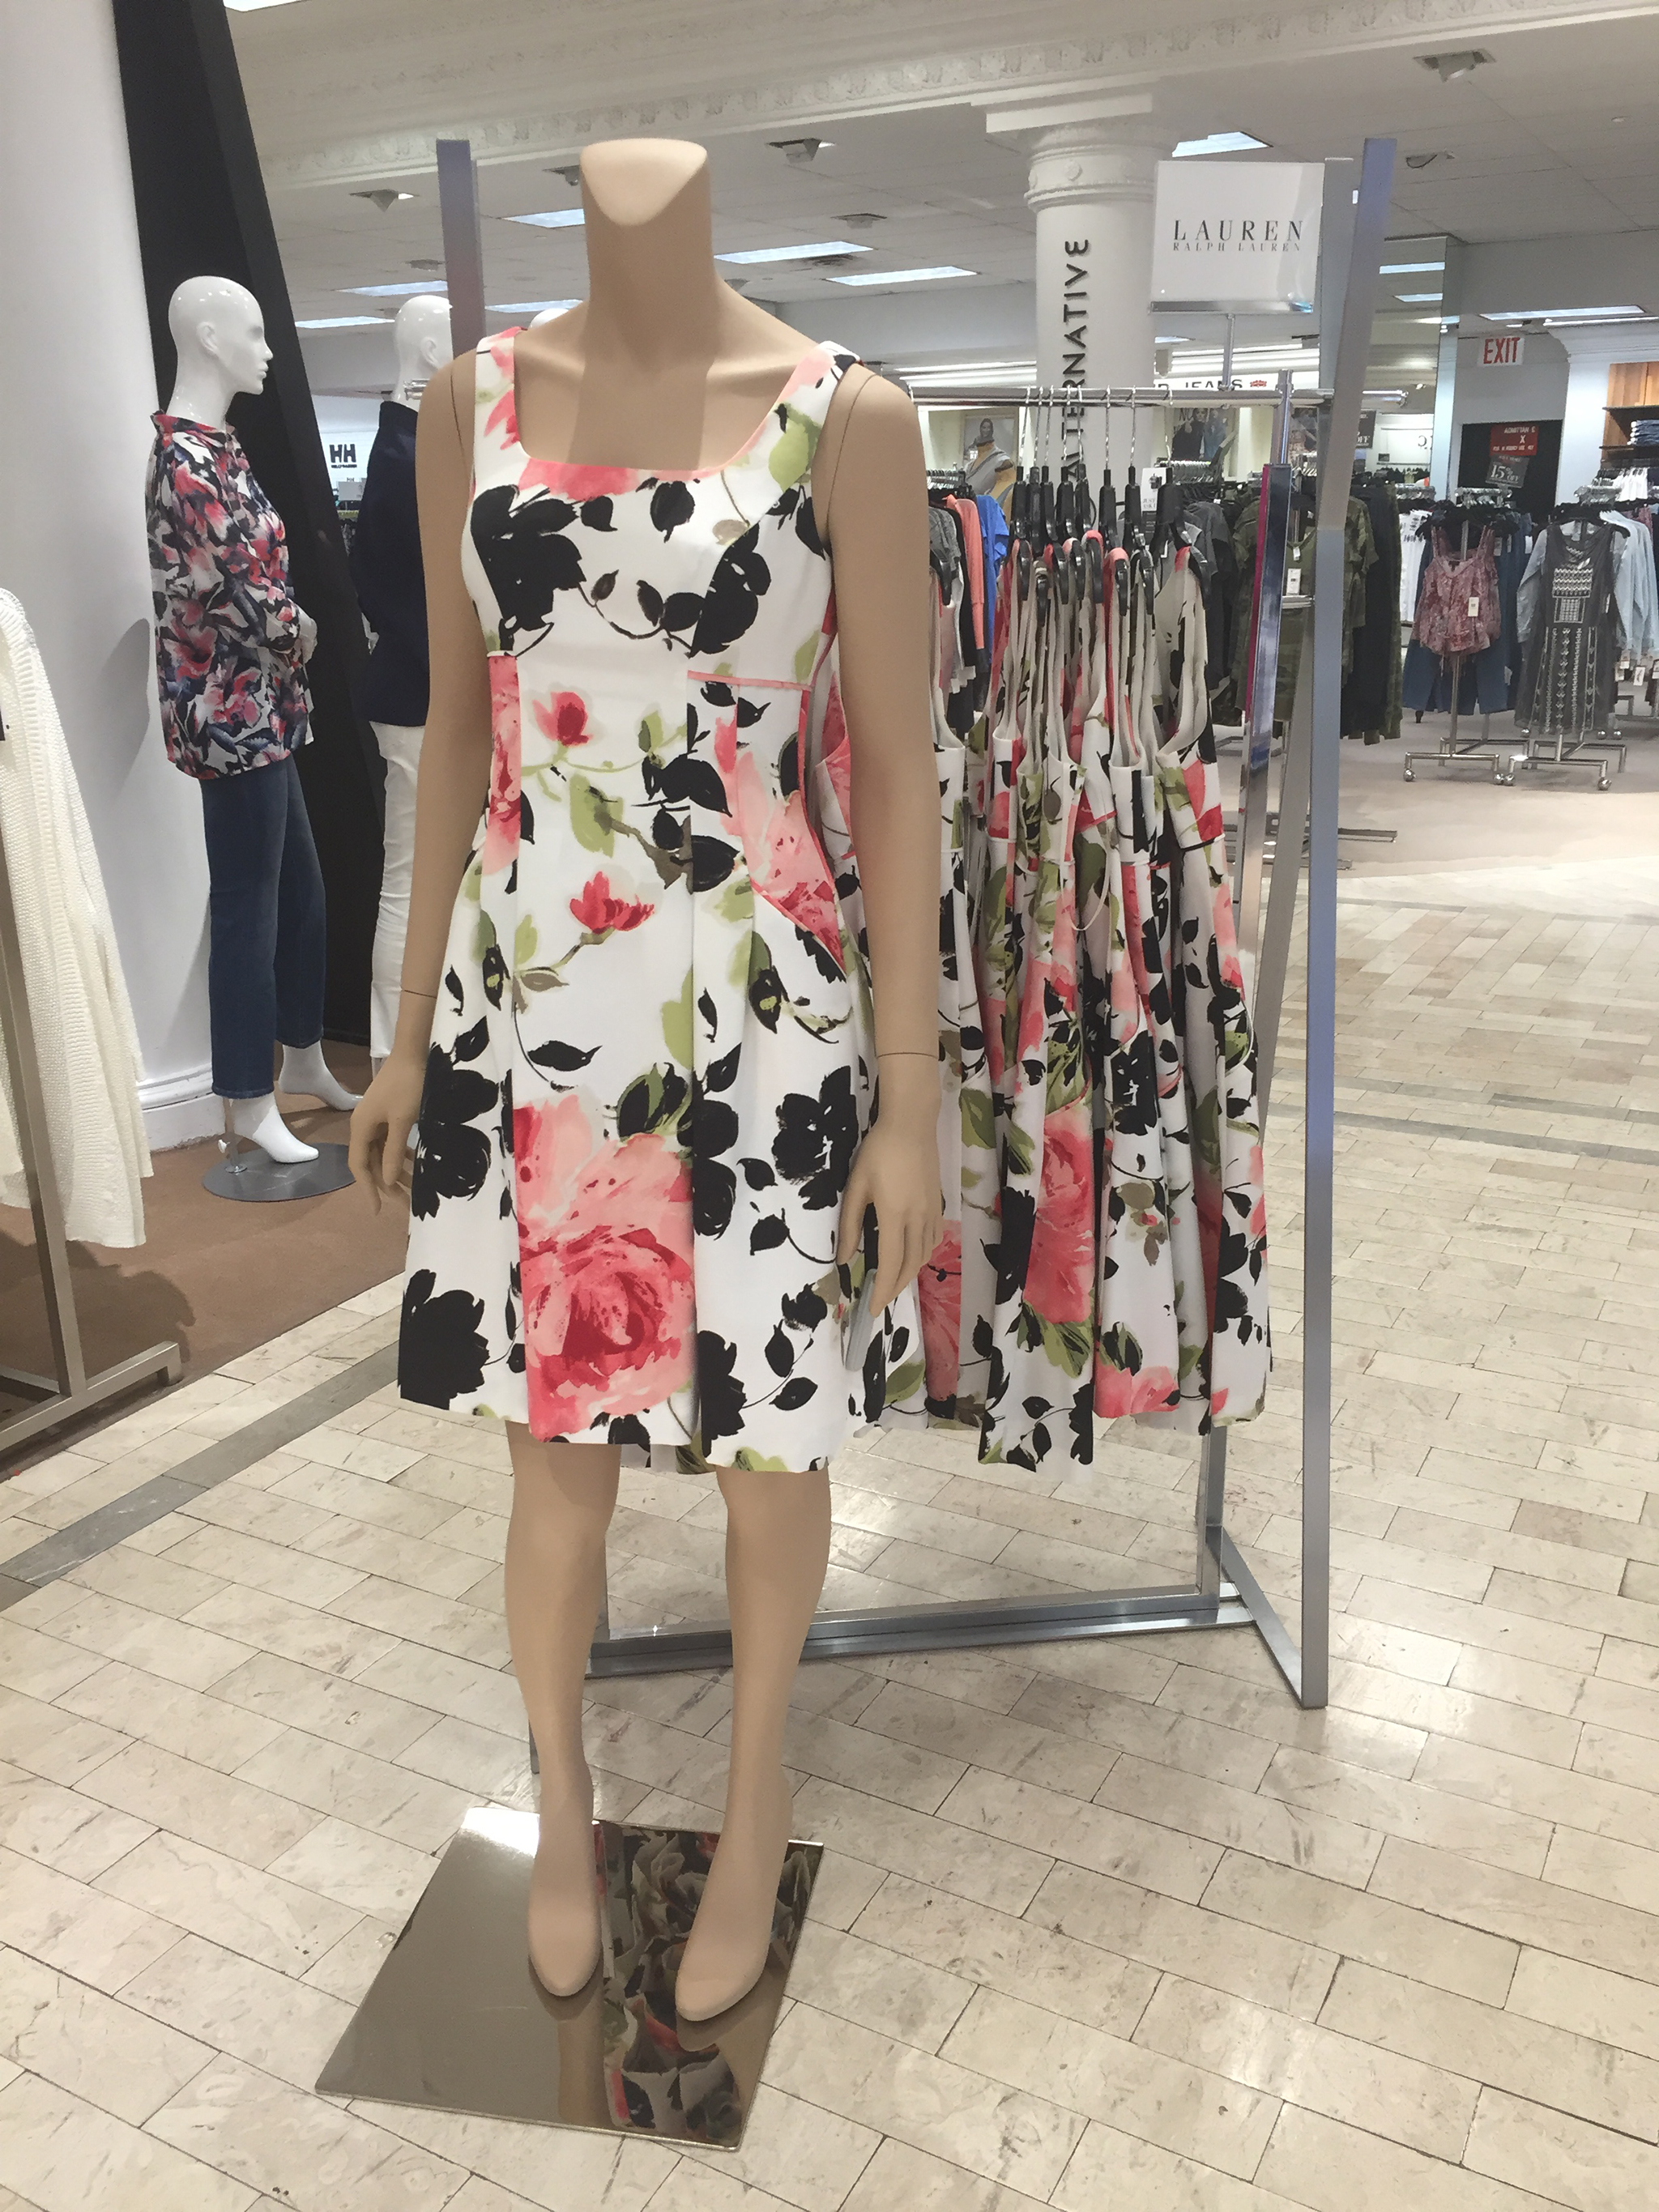 Lord-Taylor-NYC-Store-Spring16-05